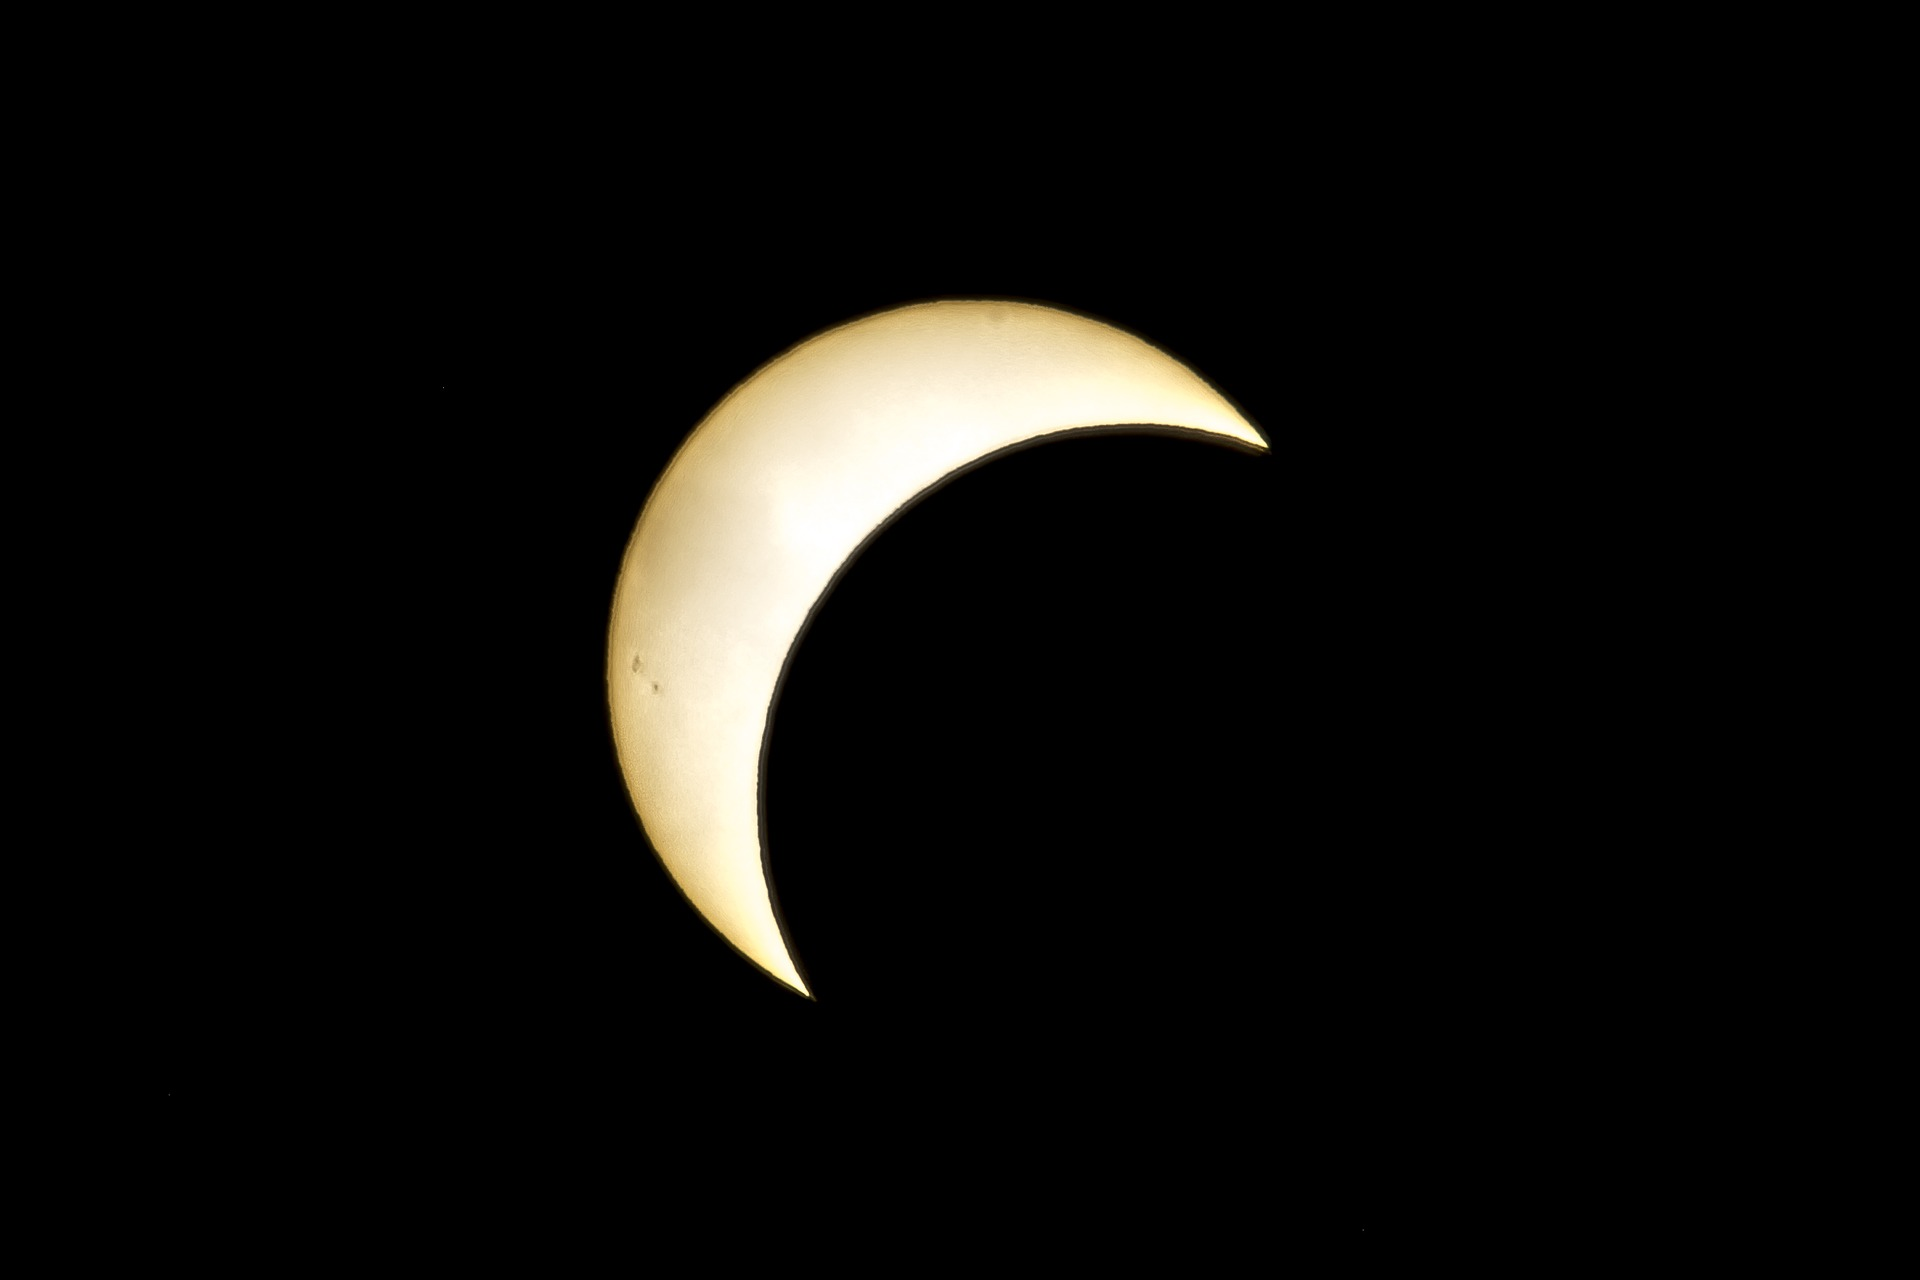 eclipse-2667047_1920.jpg